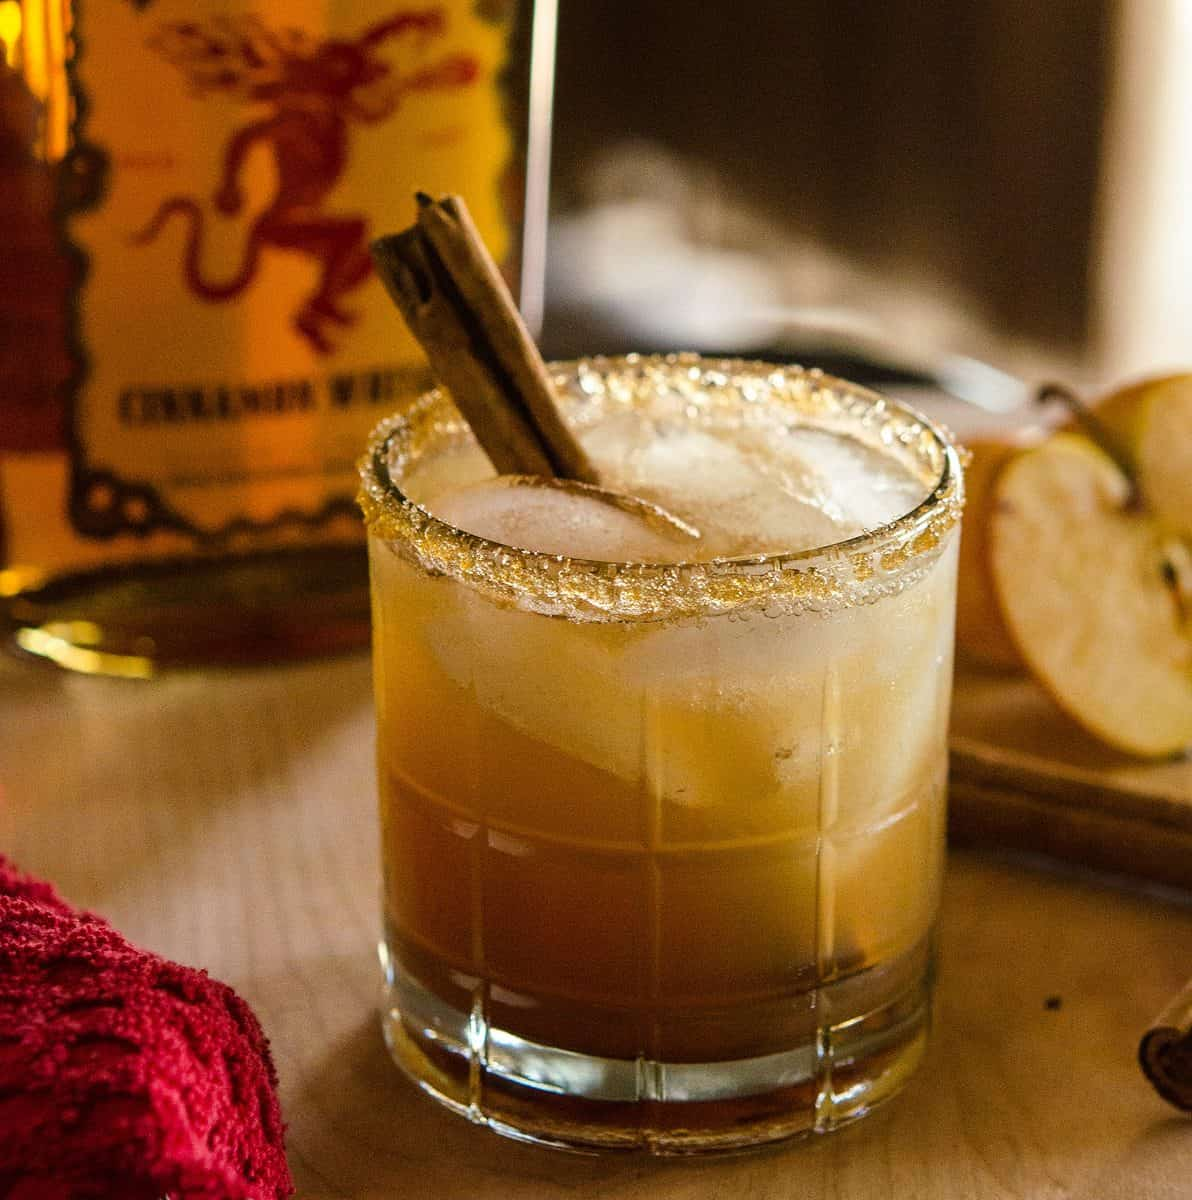 Image of apple juice-based cocktail with cinnamon stick garnish